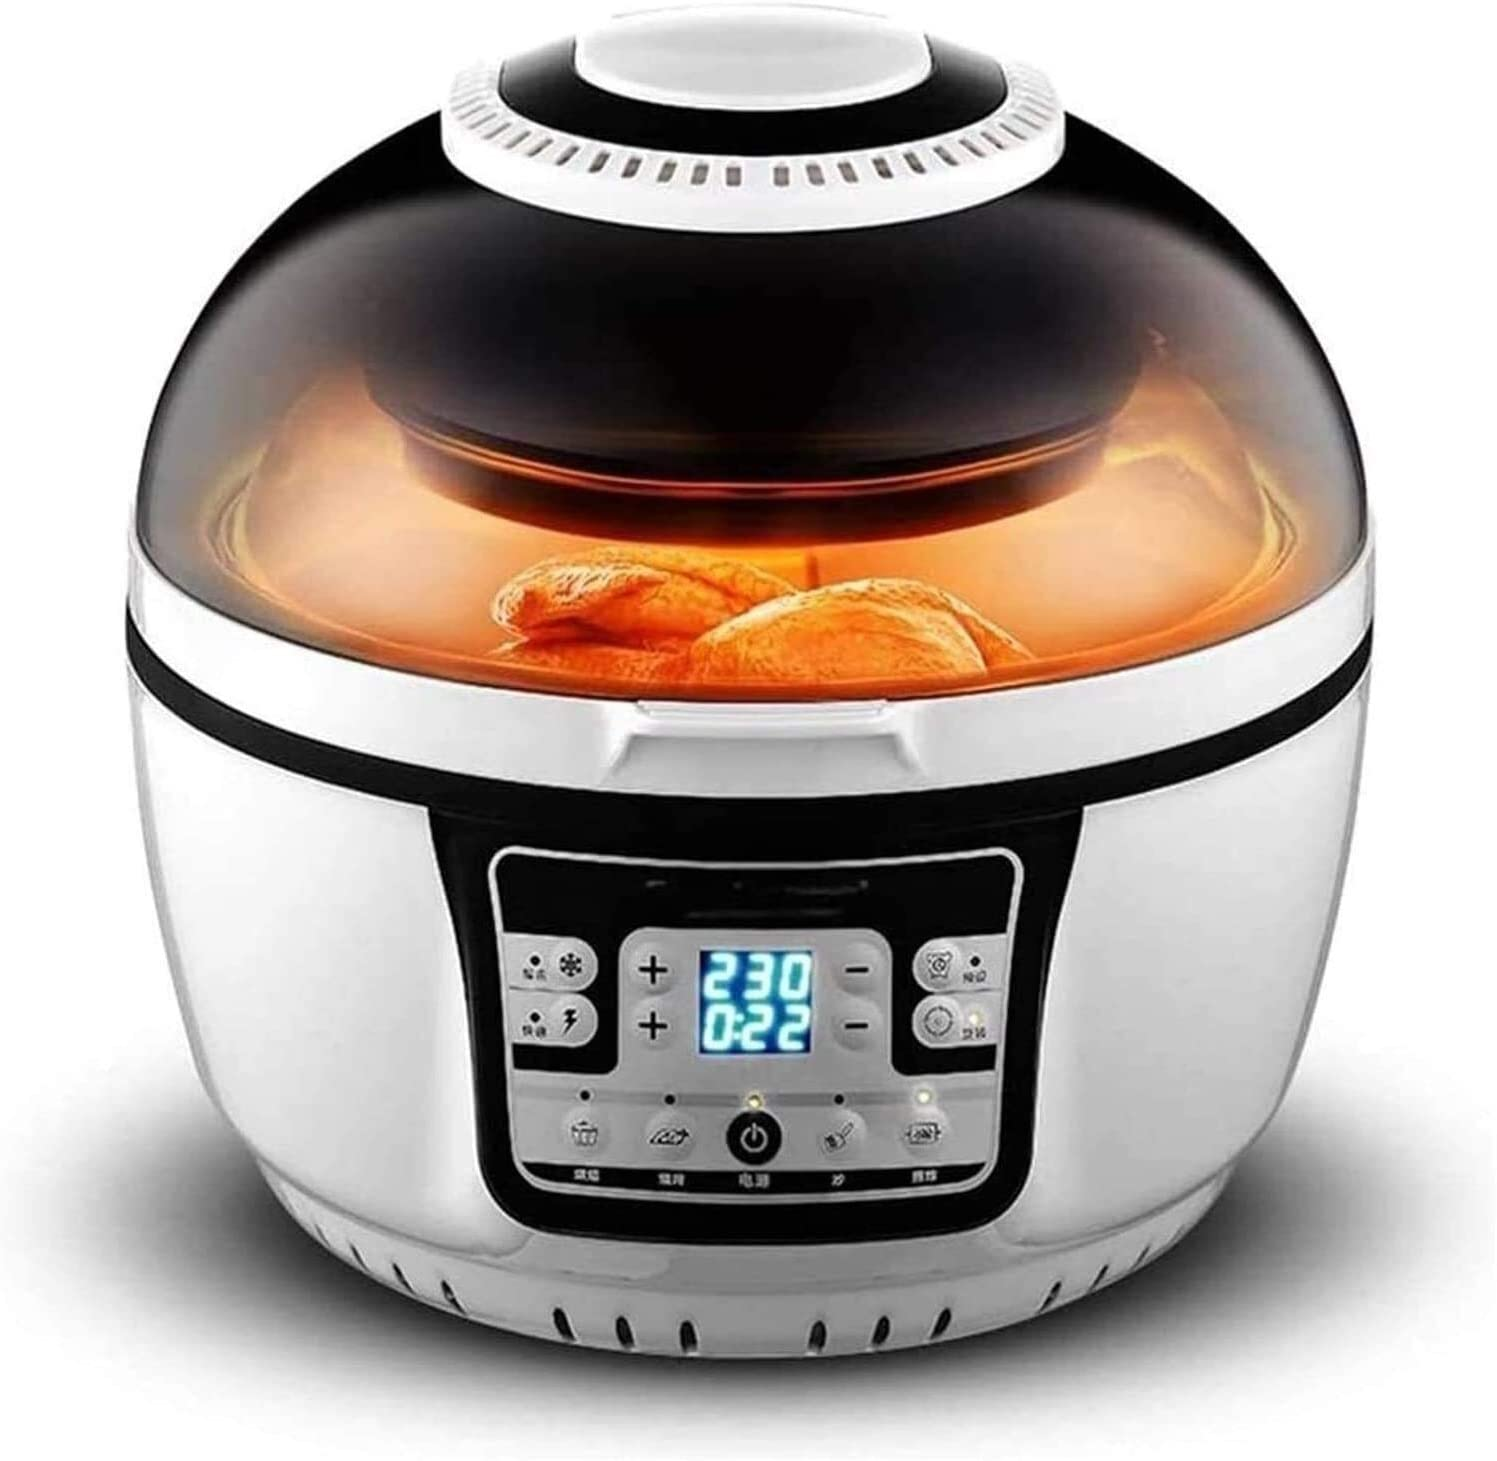 Chef Professional Air Fryer, Digital LCD Display, Healthy Oil-free Low Fat Cooking, 10L